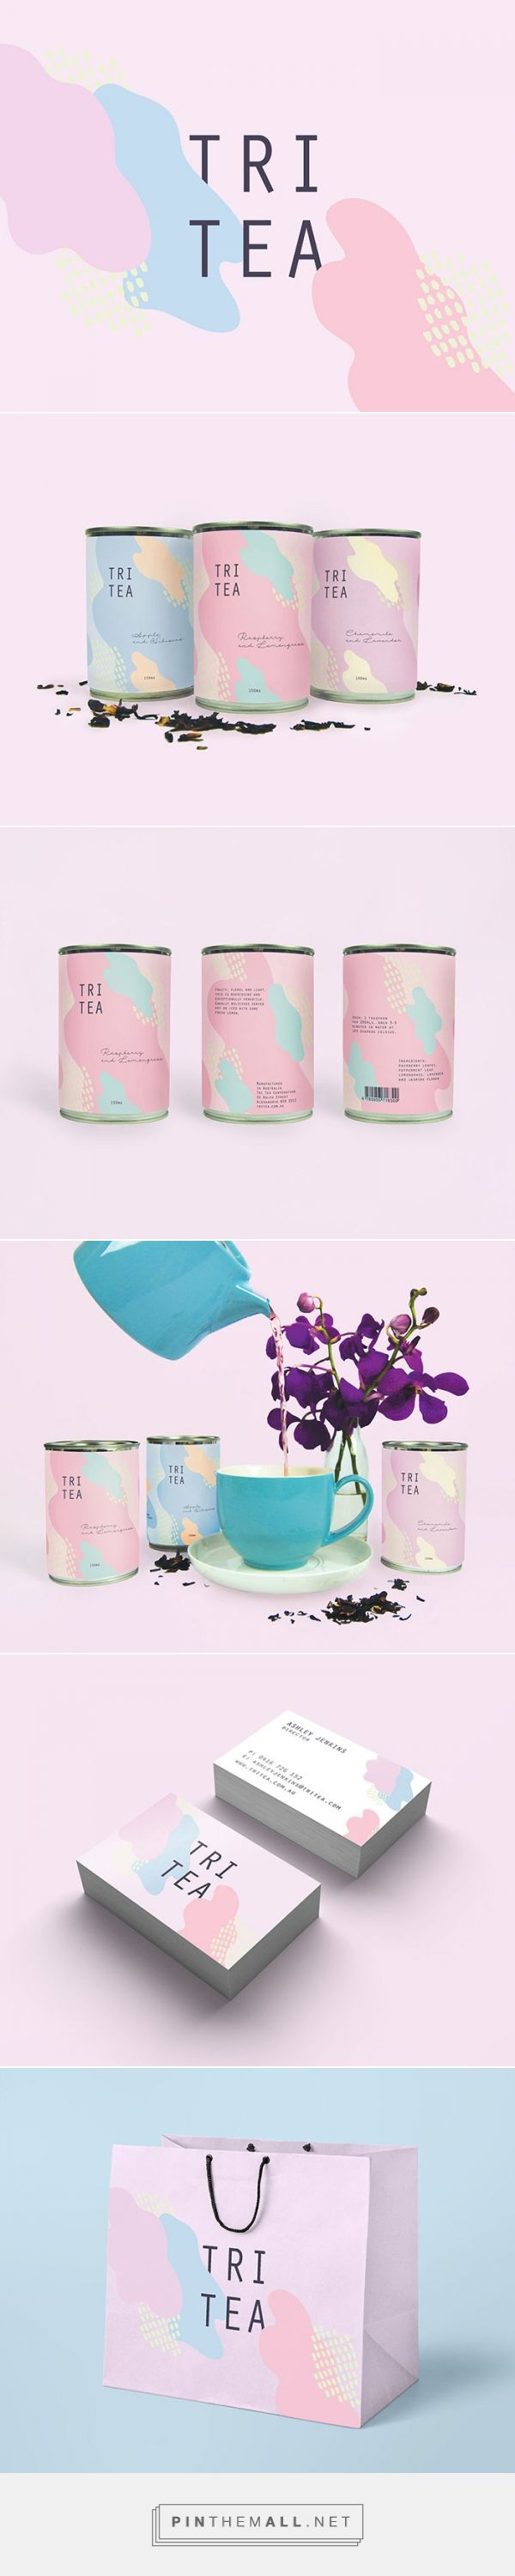 Tri Tea | Fivestar Branding – Design and Branding Agency & Inspiration Gallery